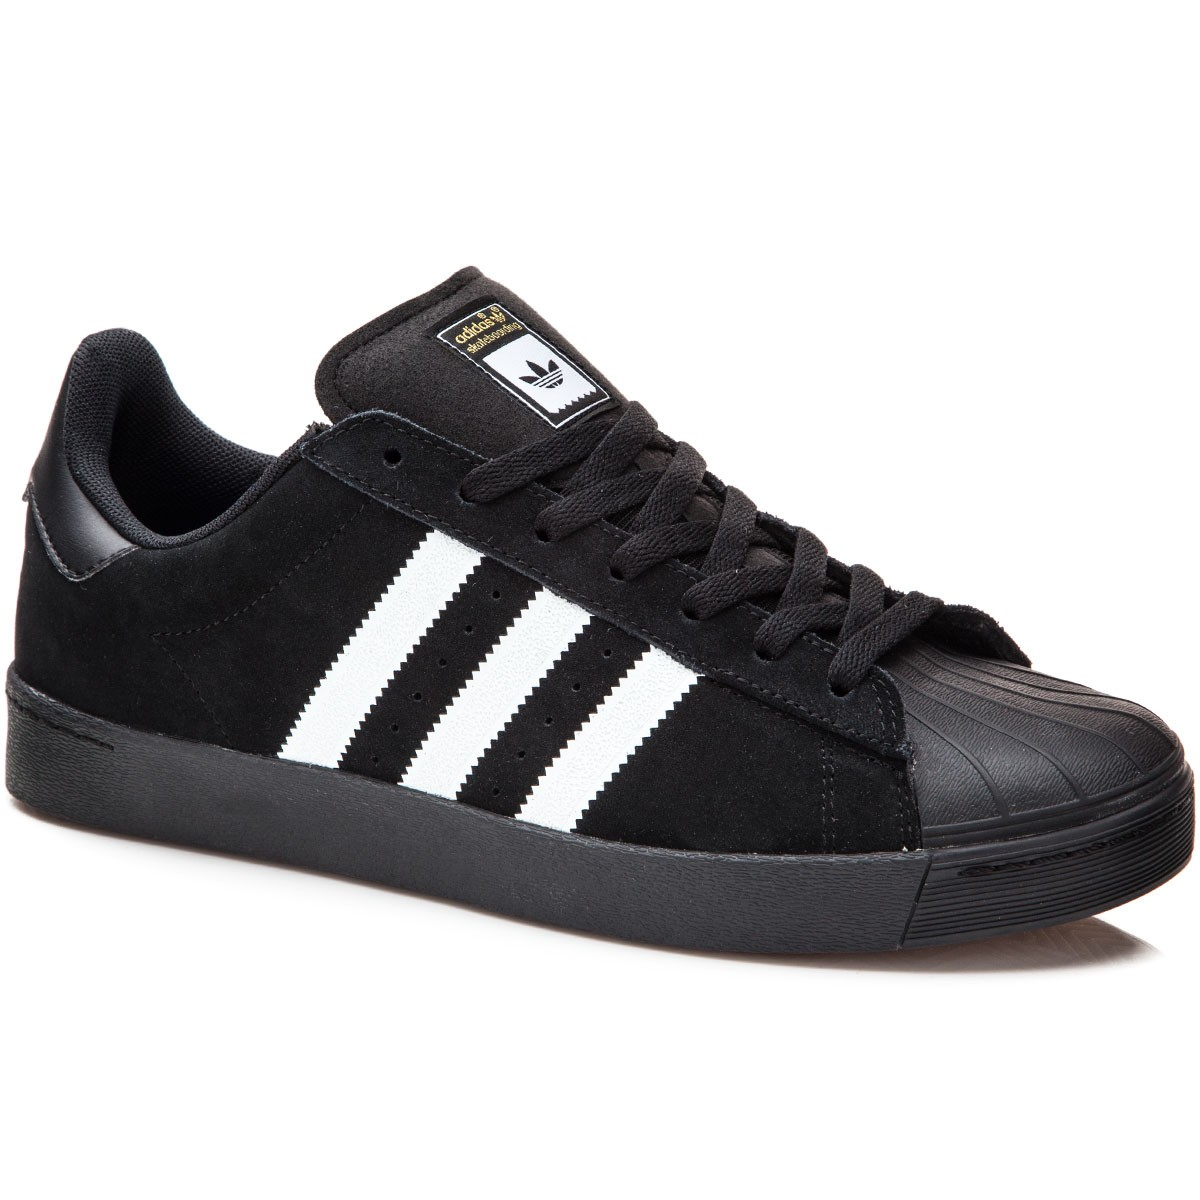 Adidas Superstar Vulc Adv Shoes - Black/White/Black Suede - 7.0